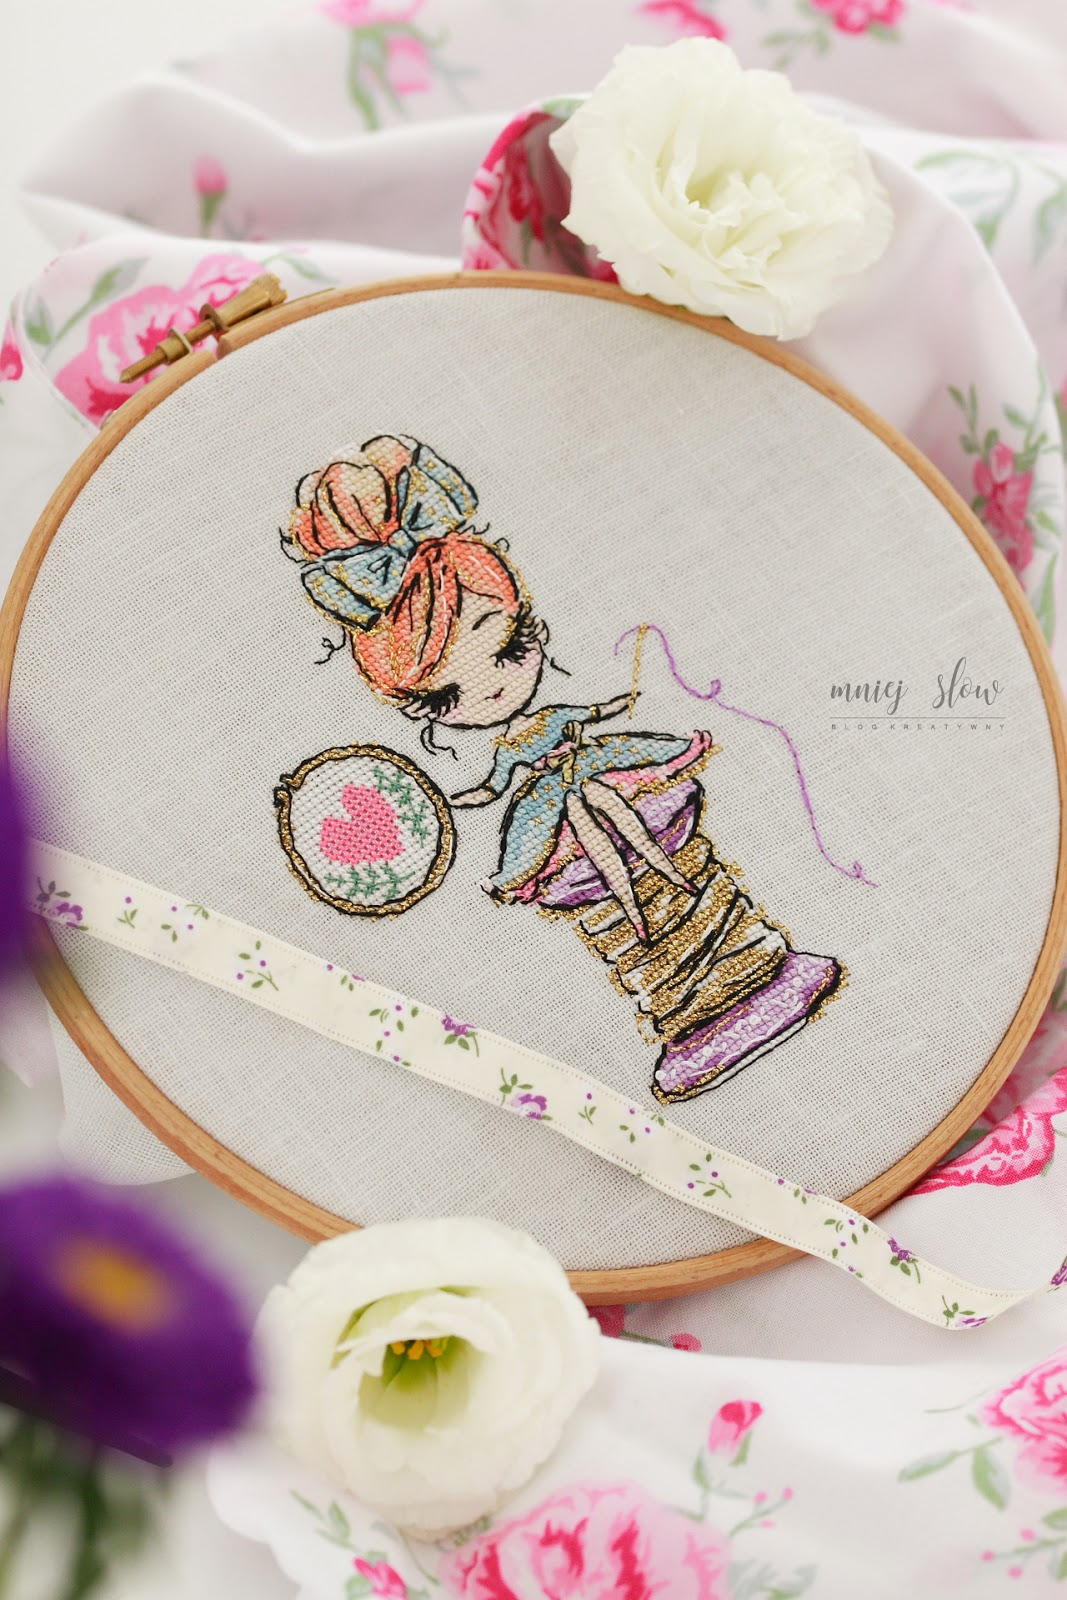 The girl and embroidery hoopps - Maria Demina (@LittleRoomInTheAttic)